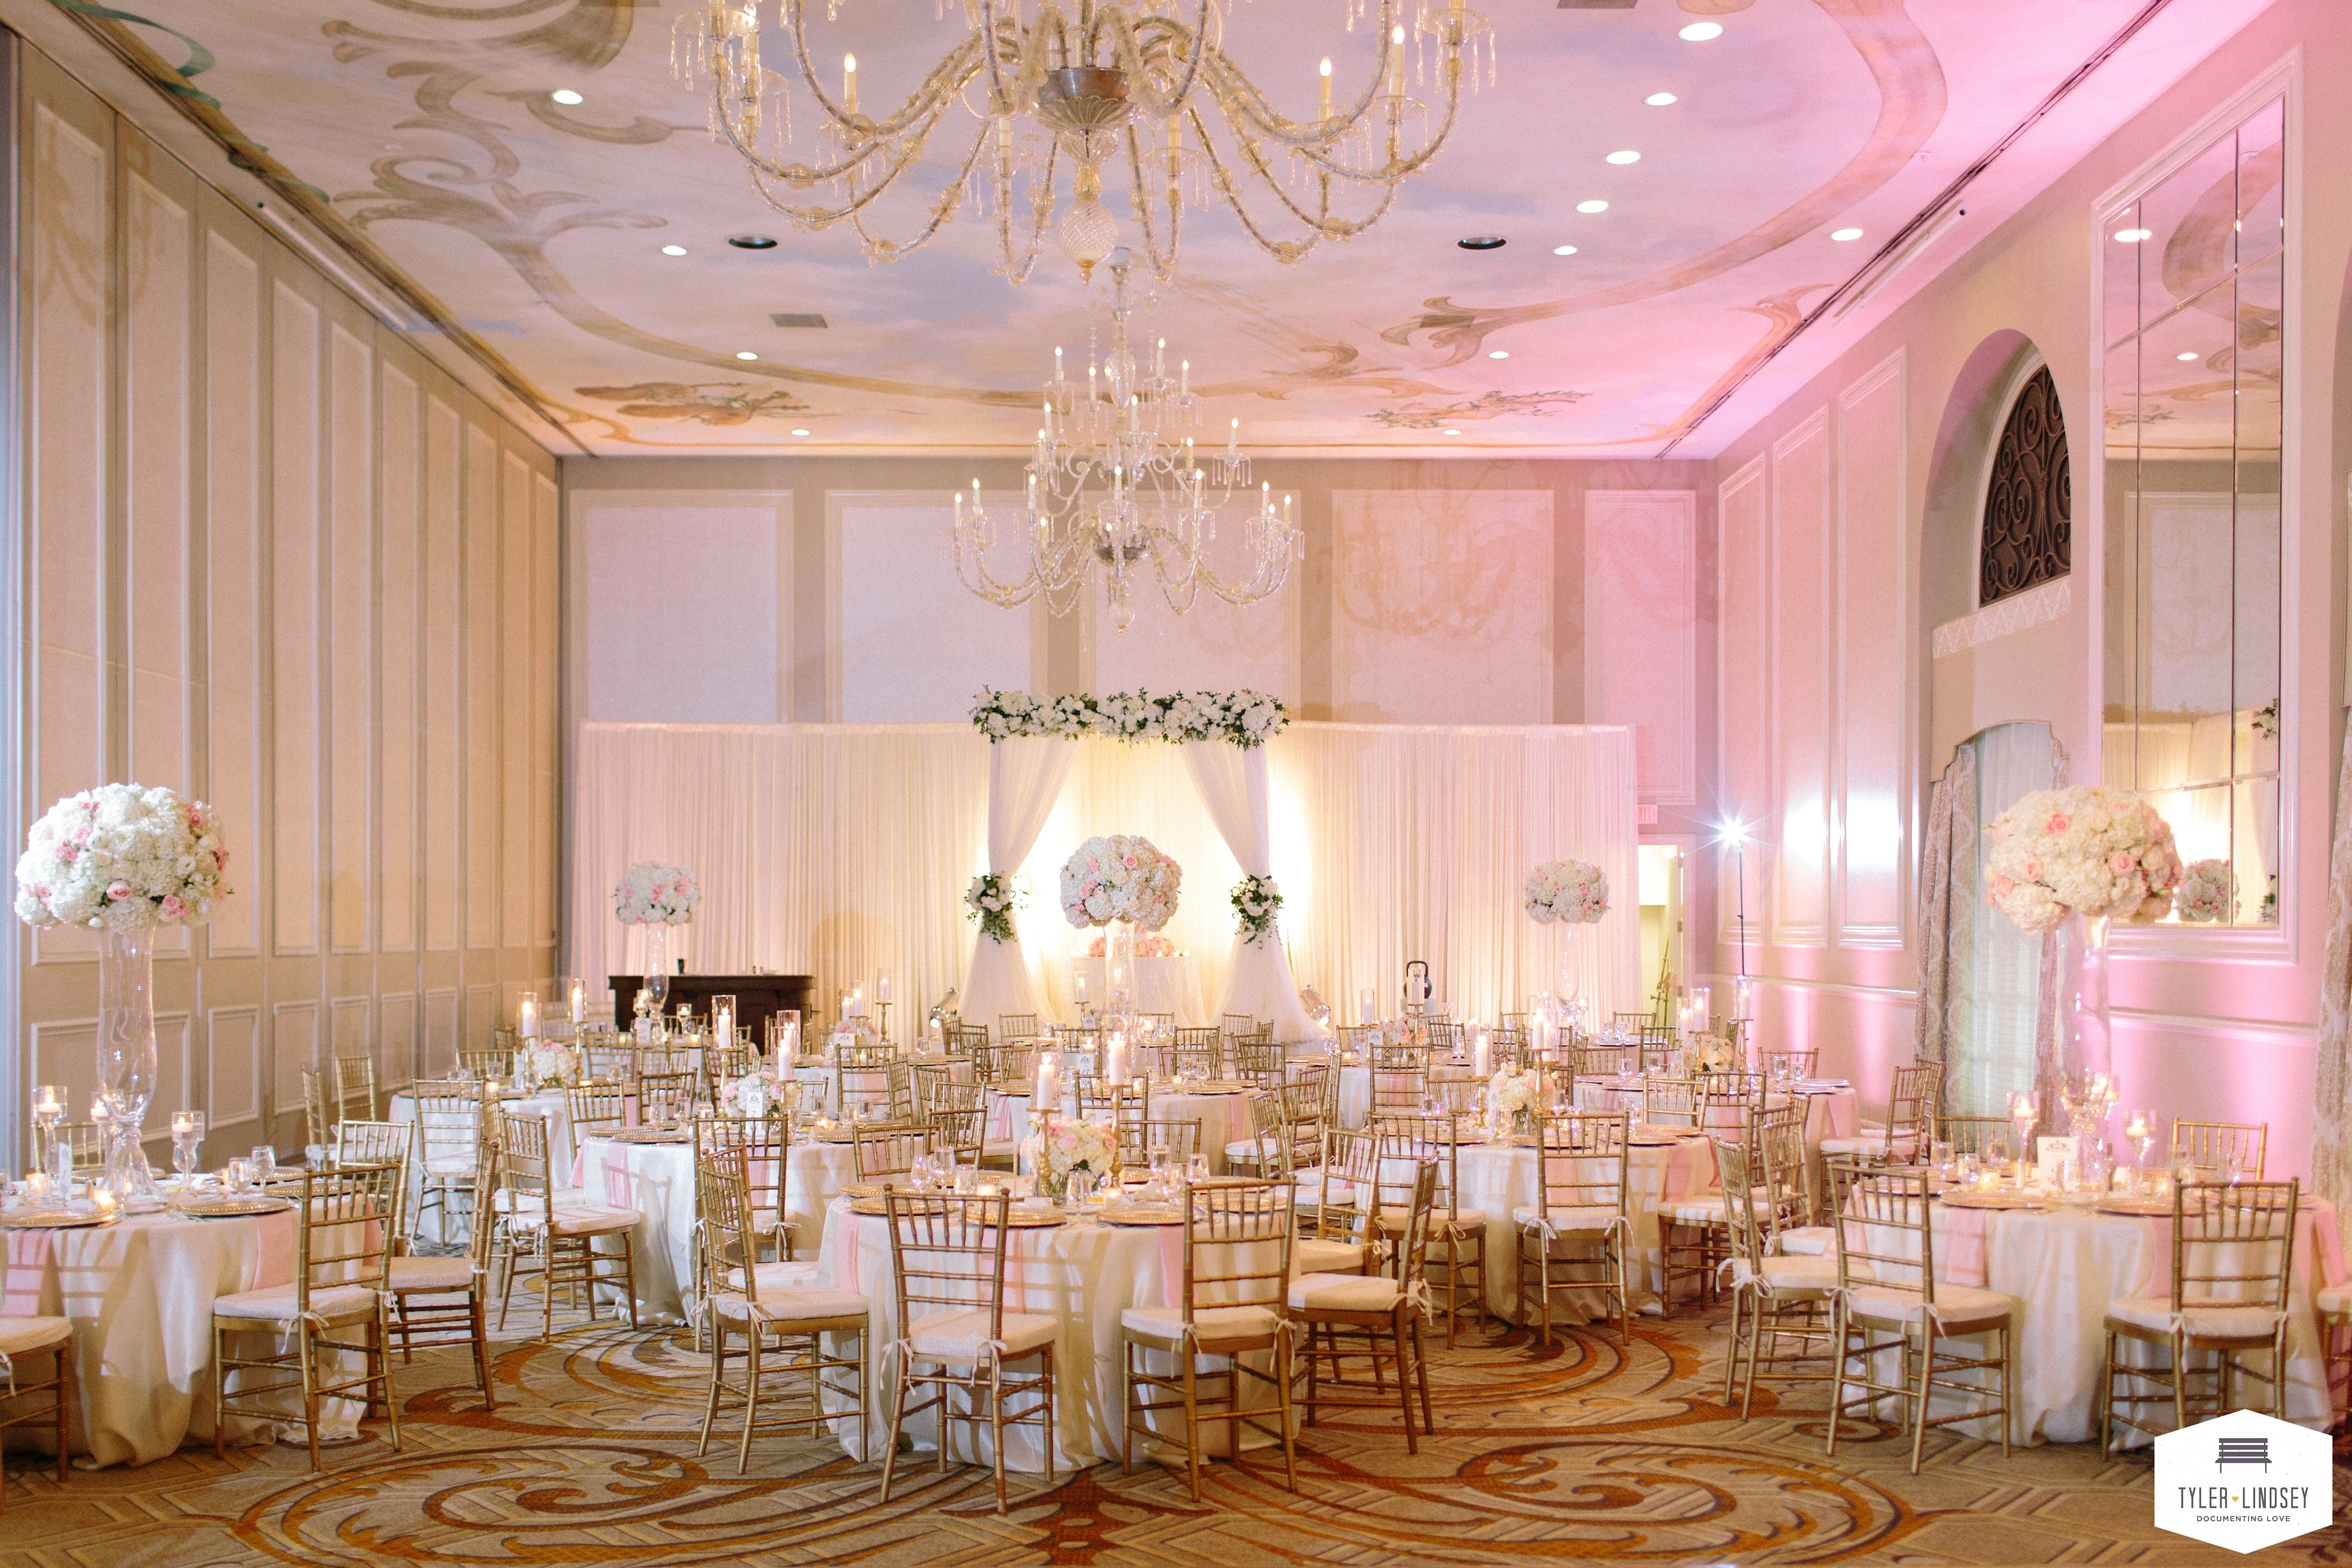 Prashe Decor | Dallas Design/Decor/Floral | 237 Photos on PartySlate